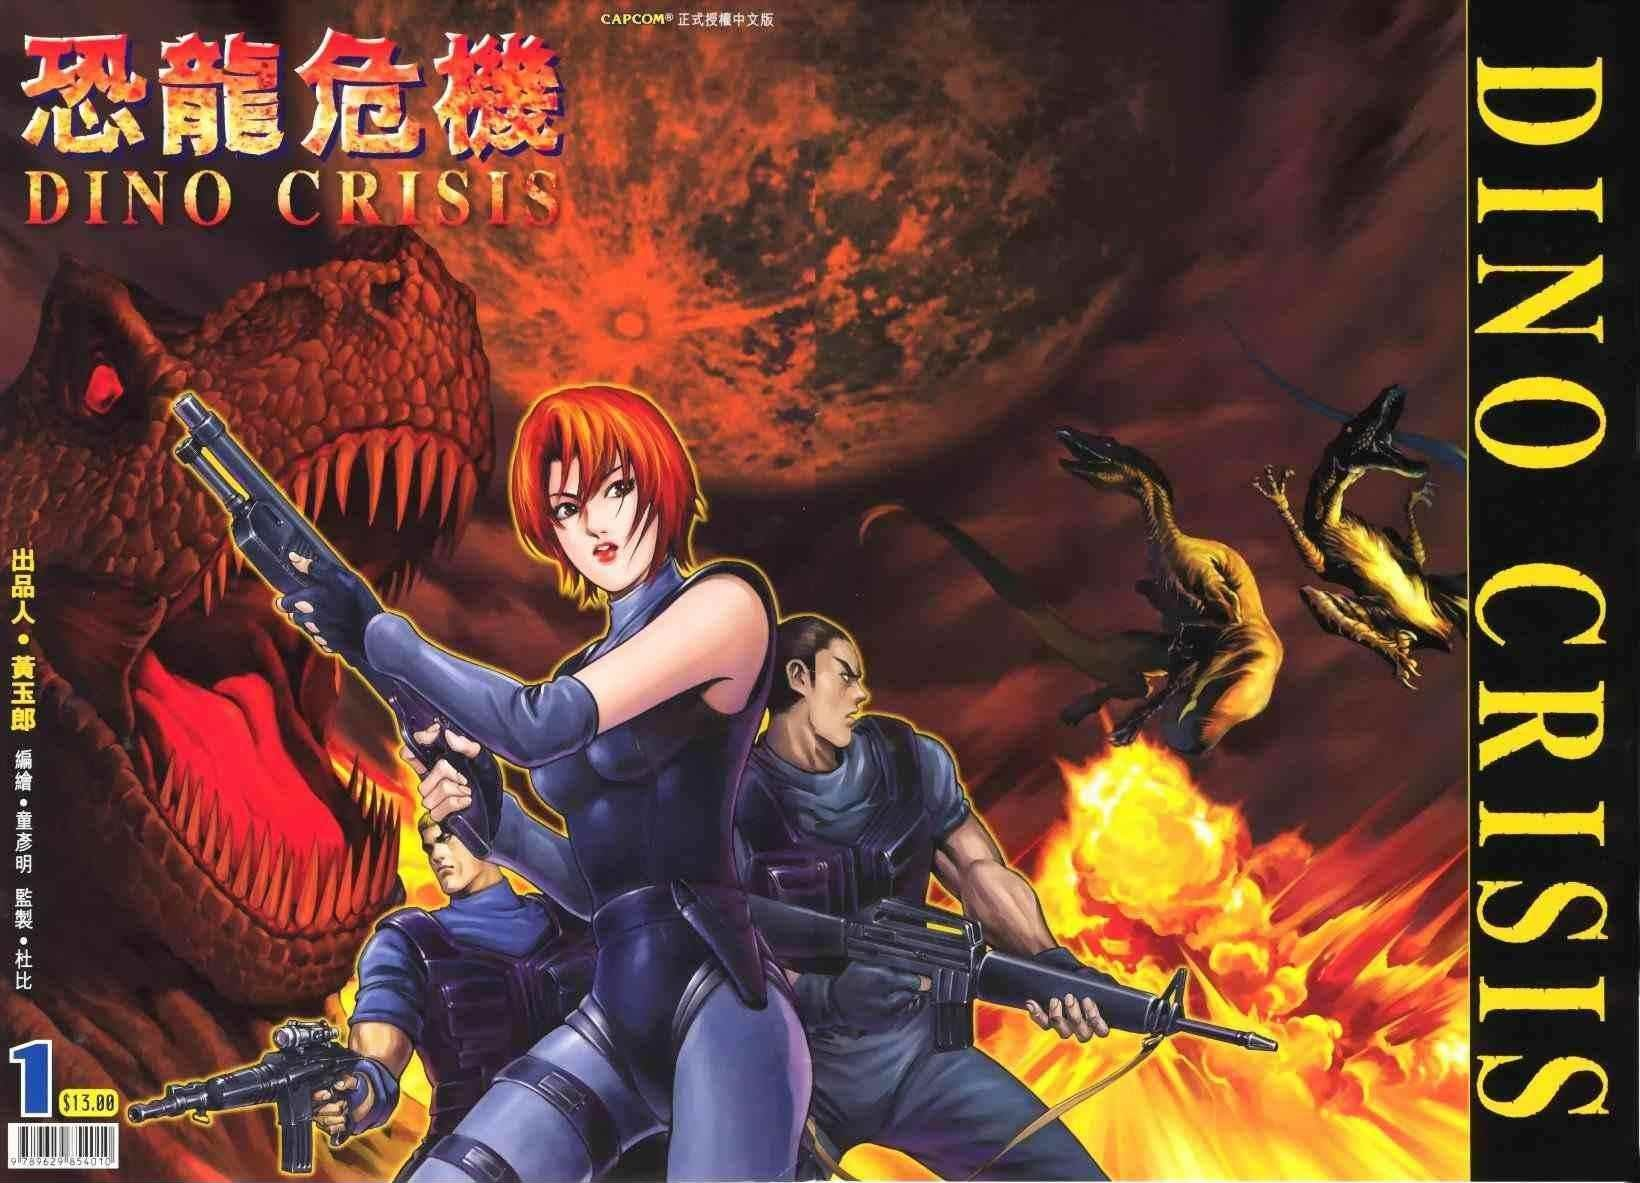 Dino Crisis Issue #1 | Dino Crisis Wiki | FANDOM powered by